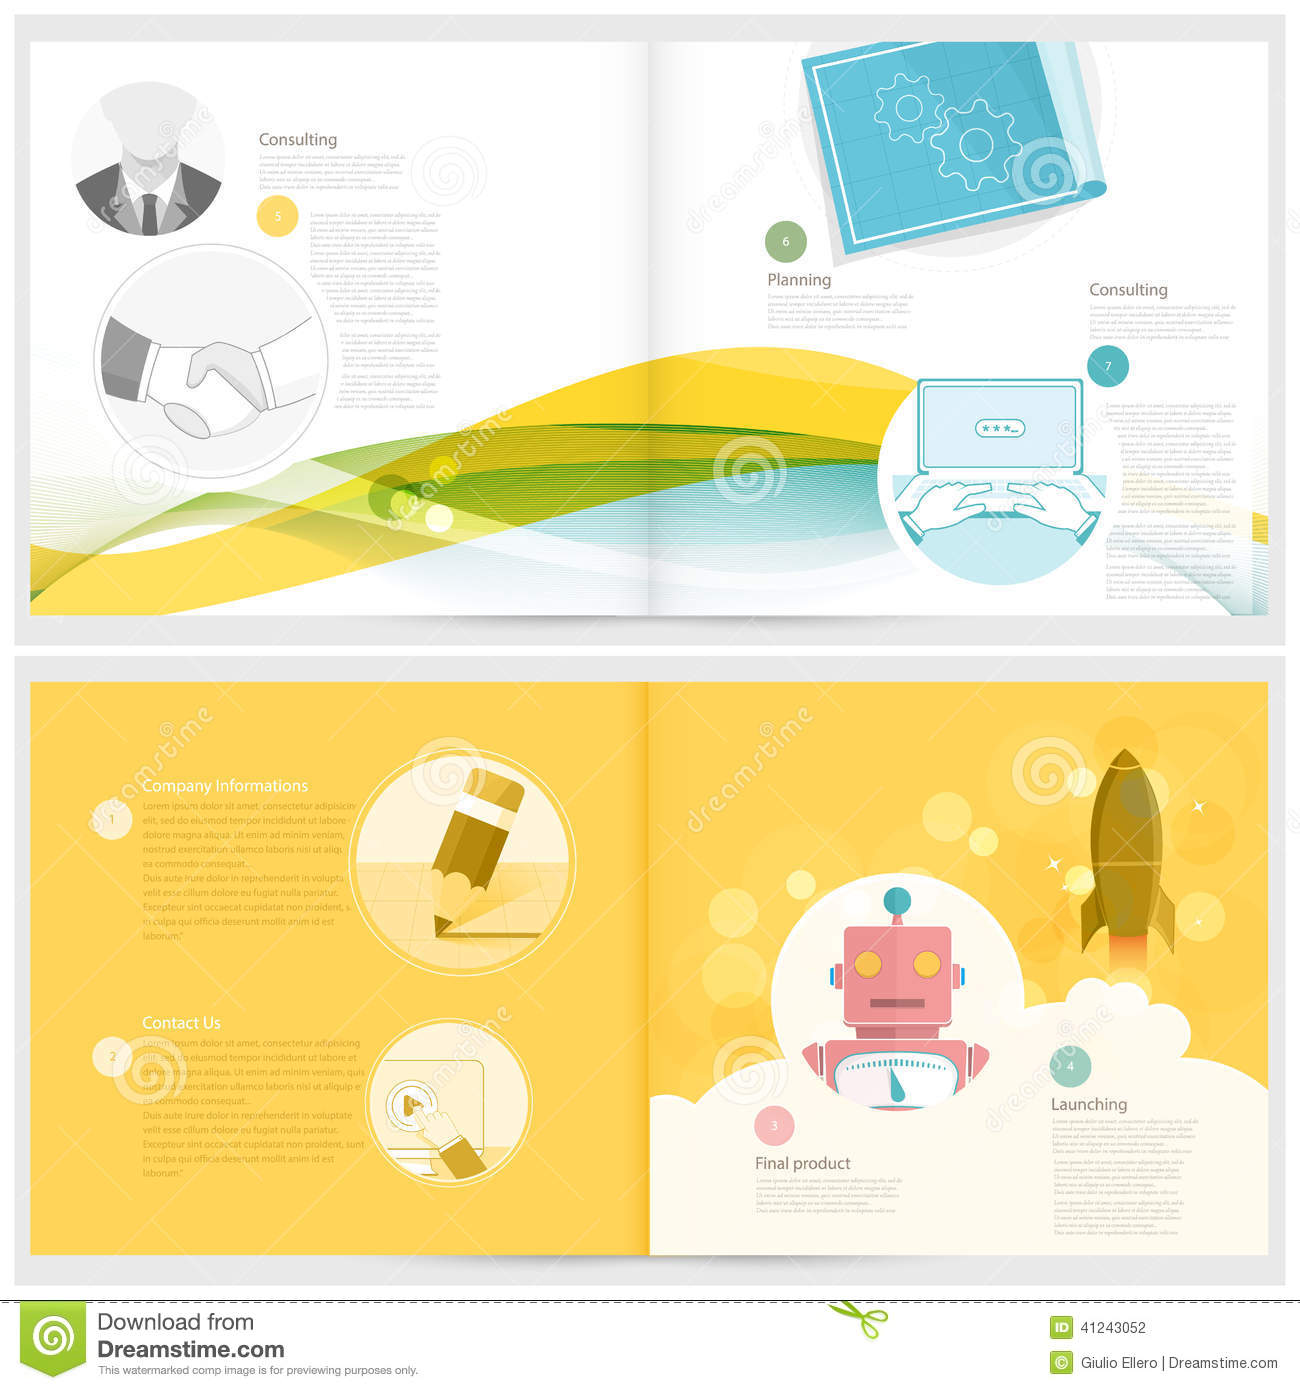 Classic Case Study Booklet Brochure Design Template For Business Classic Case Study Booklet Brochure Design Template Business Concept Icons Infographics Elements Collection Colorful  Stock Illustration Classic Case Study Booklet Brochure Design Template Business Concept Icons Infographics Elements Collection Colorful Image